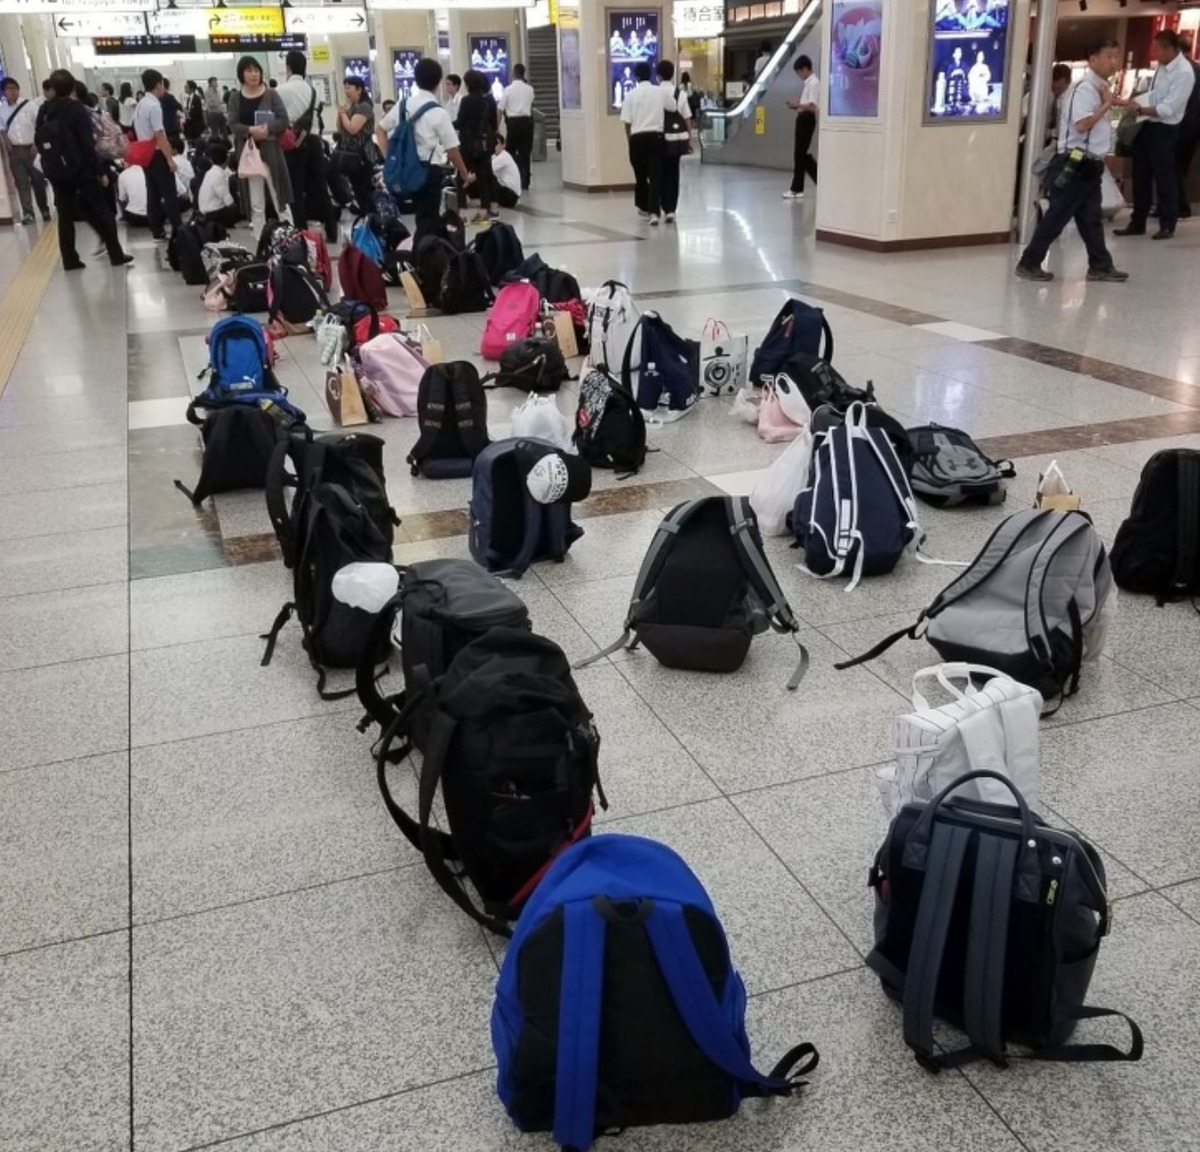 collection of backpacks on the ground at train station